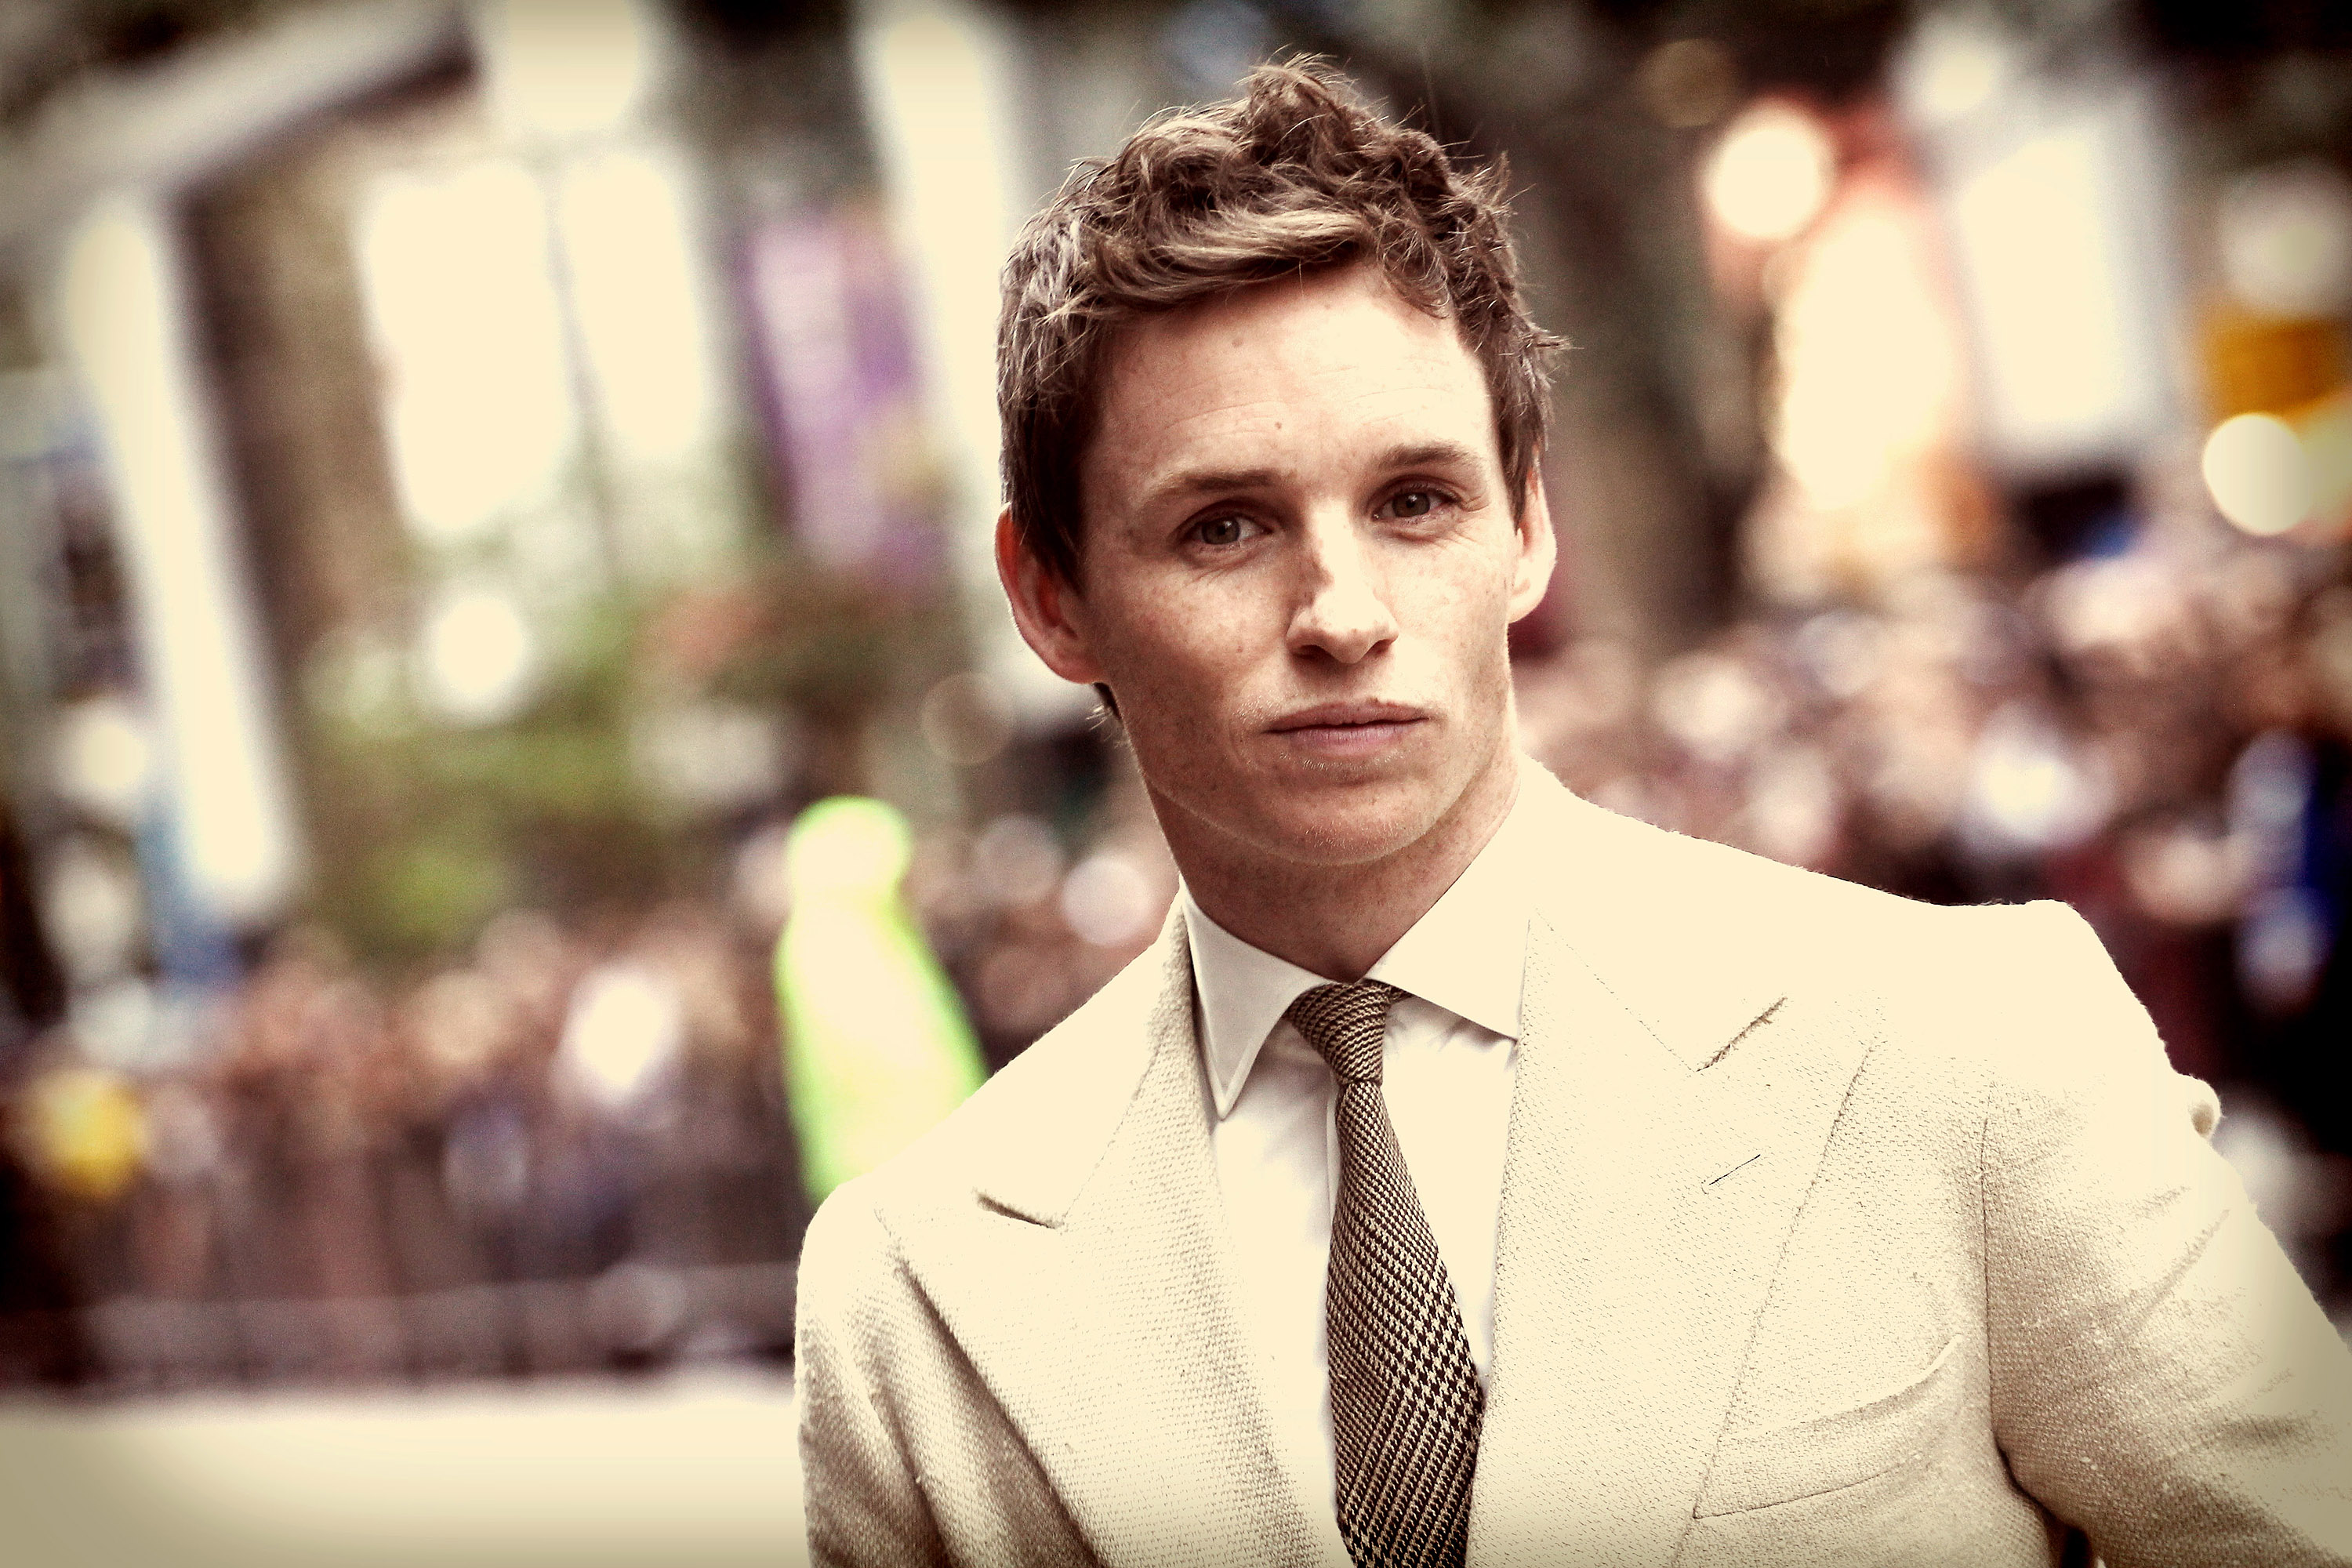 Actor Eddie Redmayne attends The Danish Girl premiere during the 2015 Toronto International Film Festival.